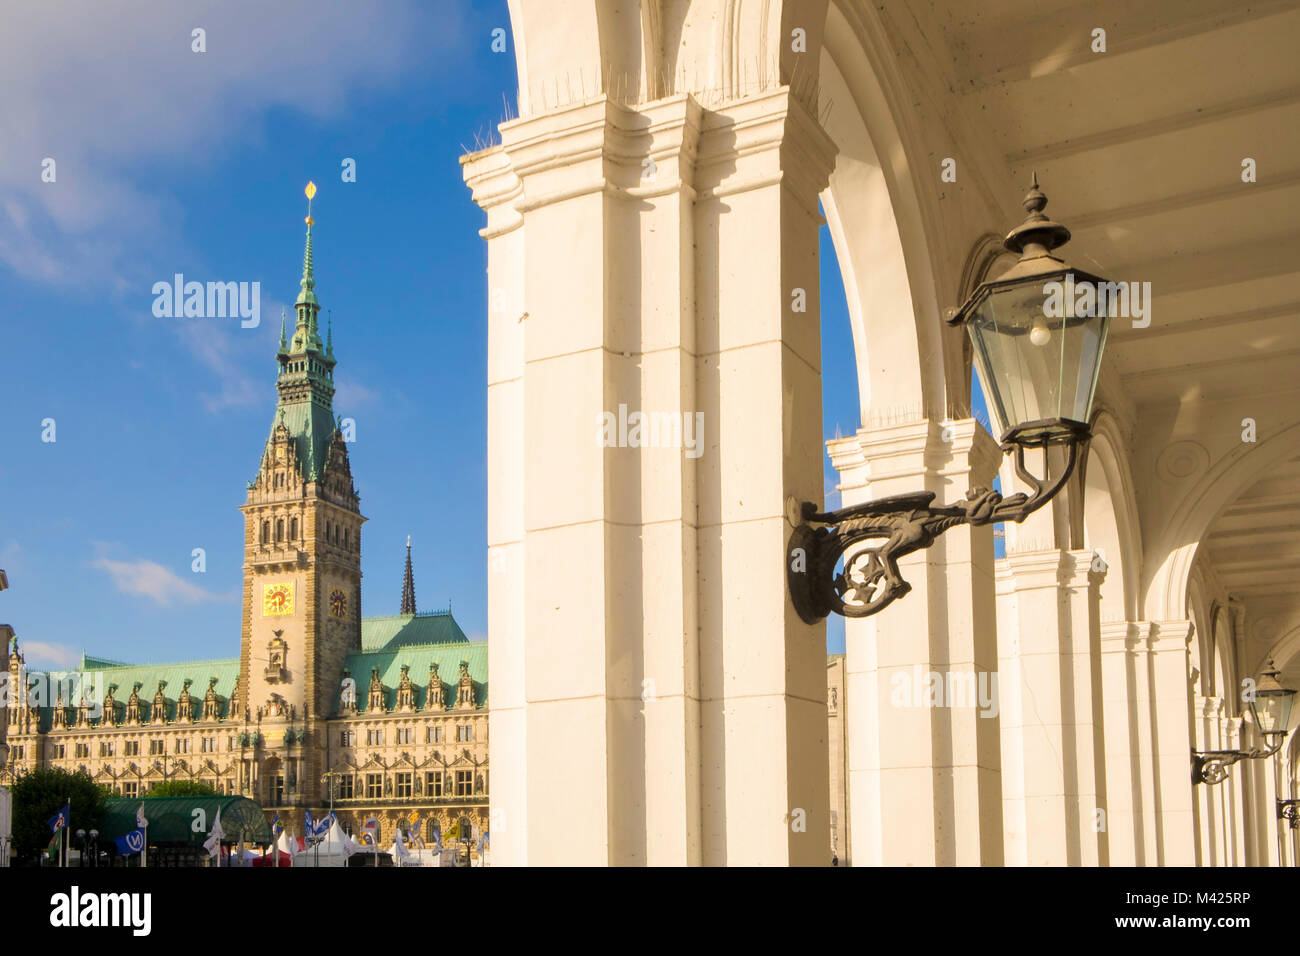 The Rathaus, Town Hall in Hamburg, Germany - Stock Image